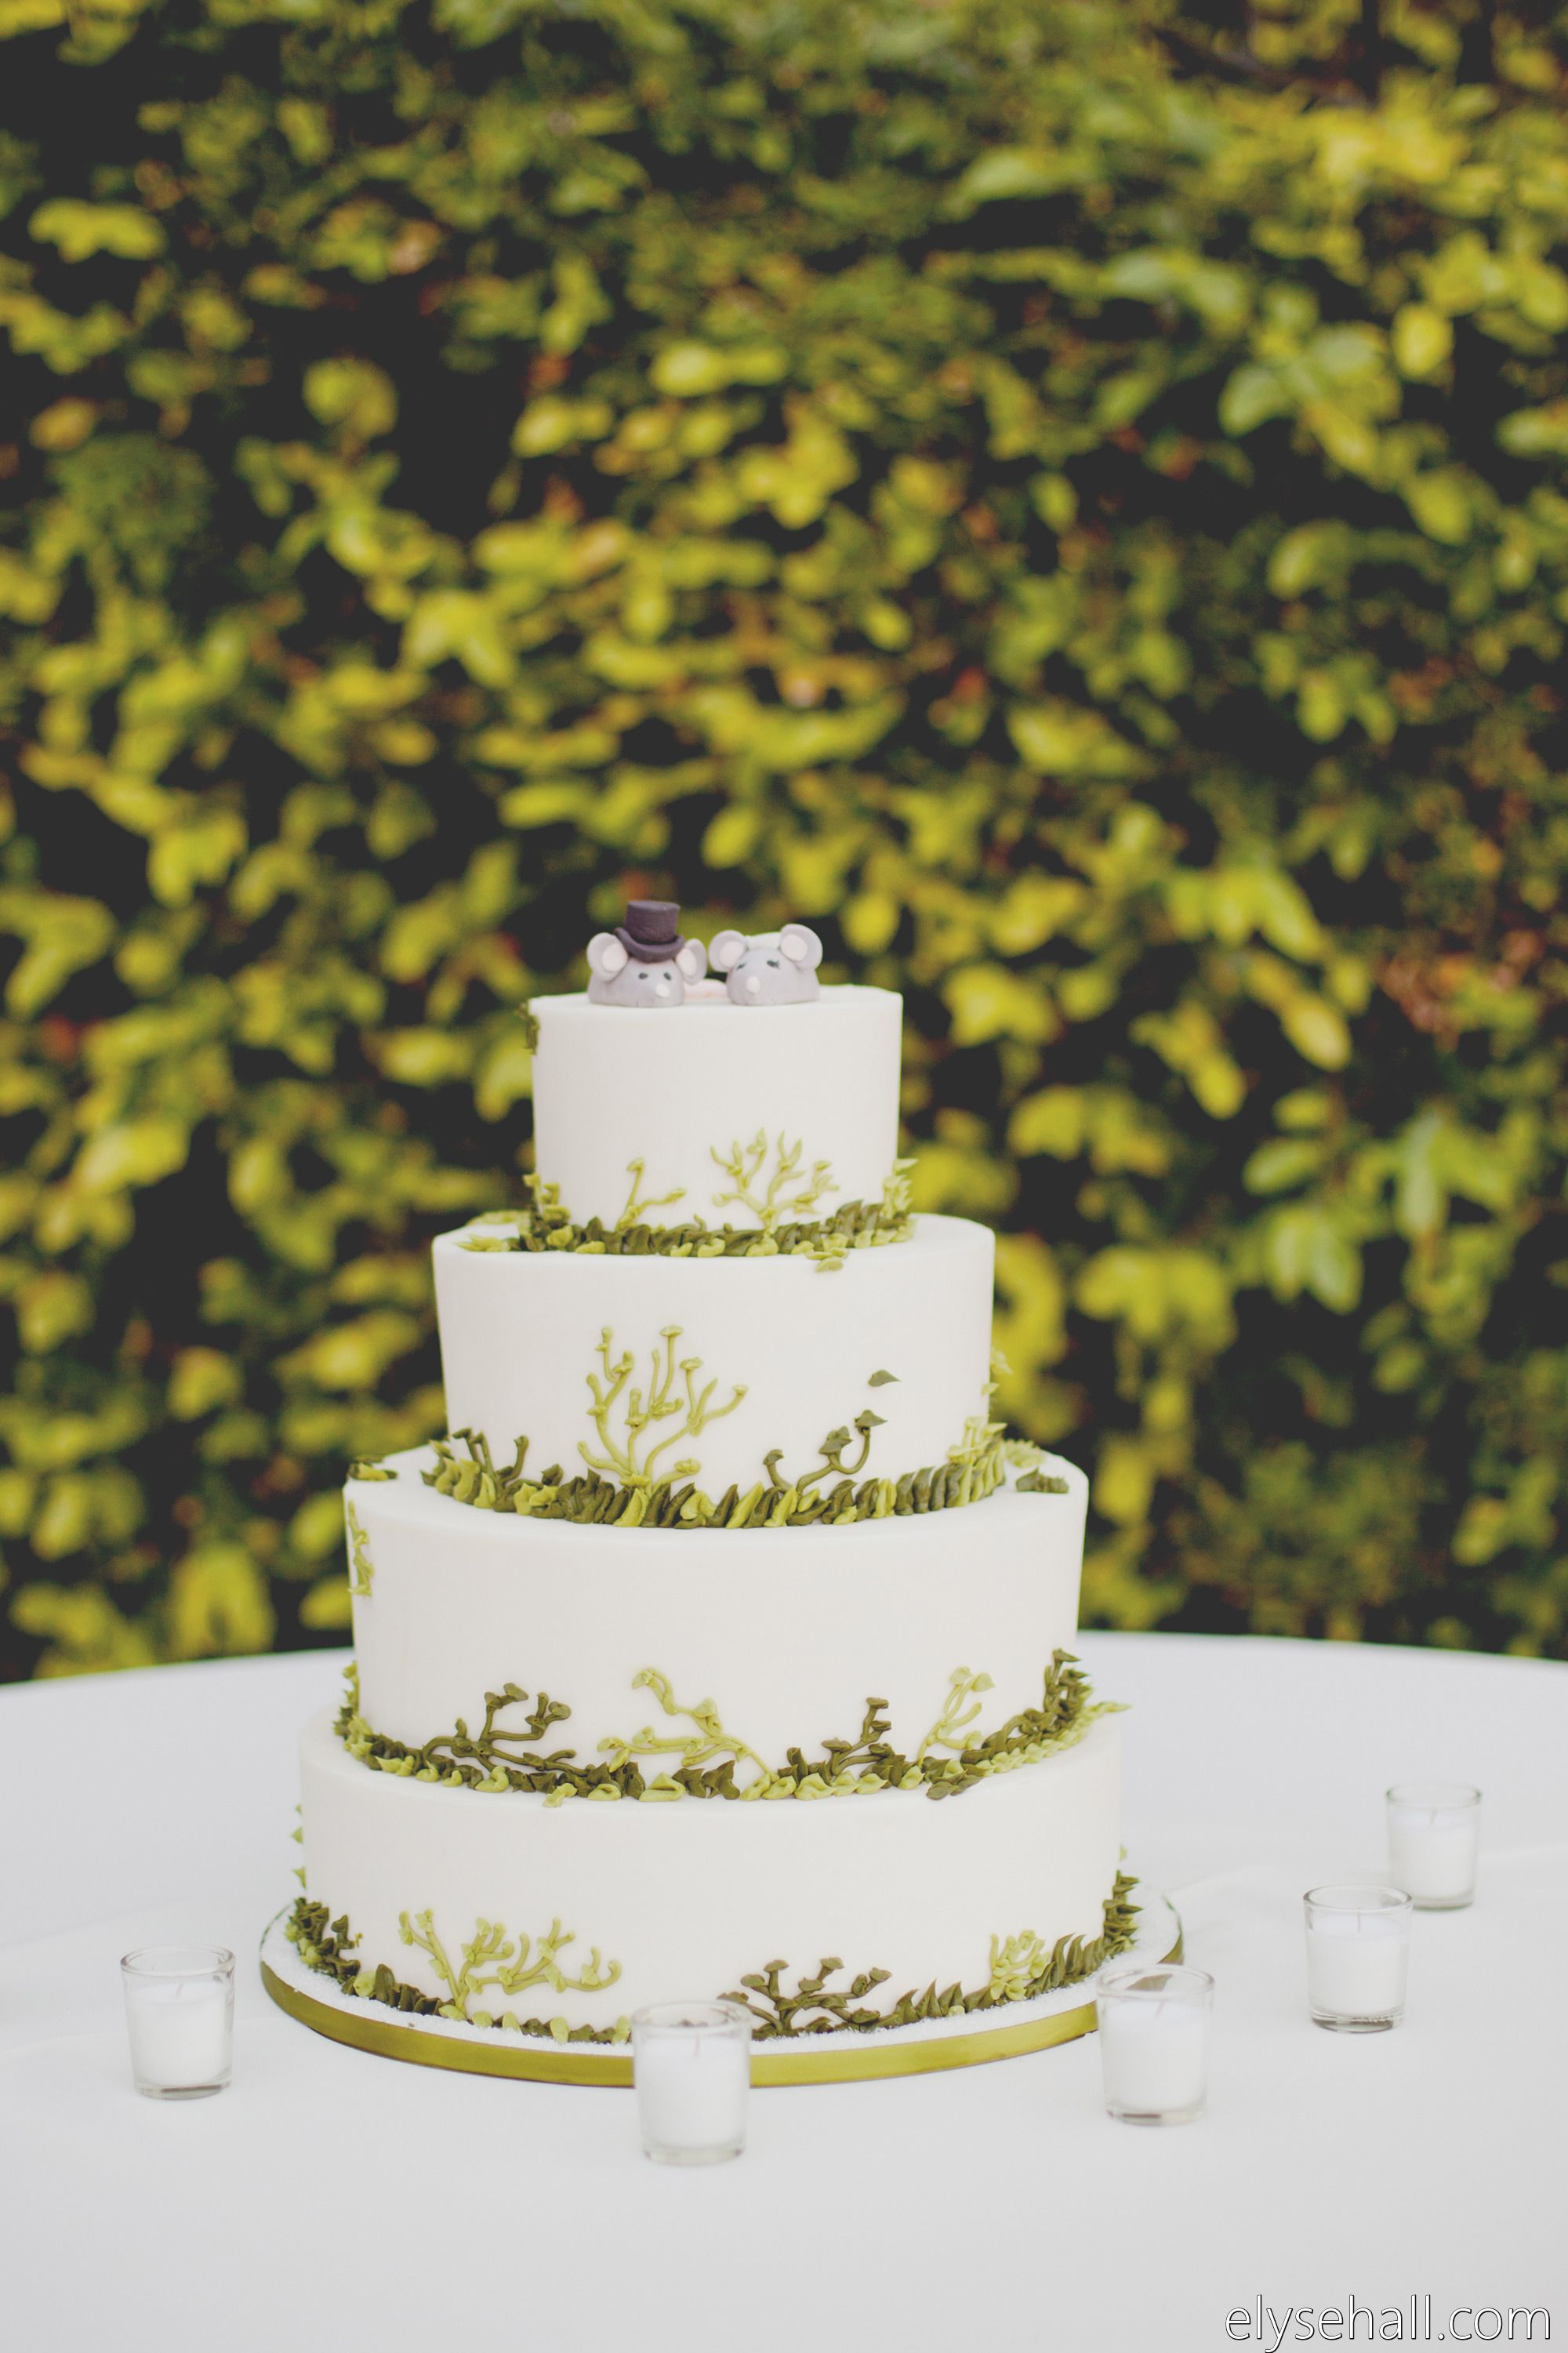 Woodland wedding cake with mouse topper!  Photography: Elyse Hall - www.elysehall.com  Read More: http://www.stylemepretty.com/southwest-weddings/2014/04/21/green-superstition-mountain-golf-and-country-club-wedding/